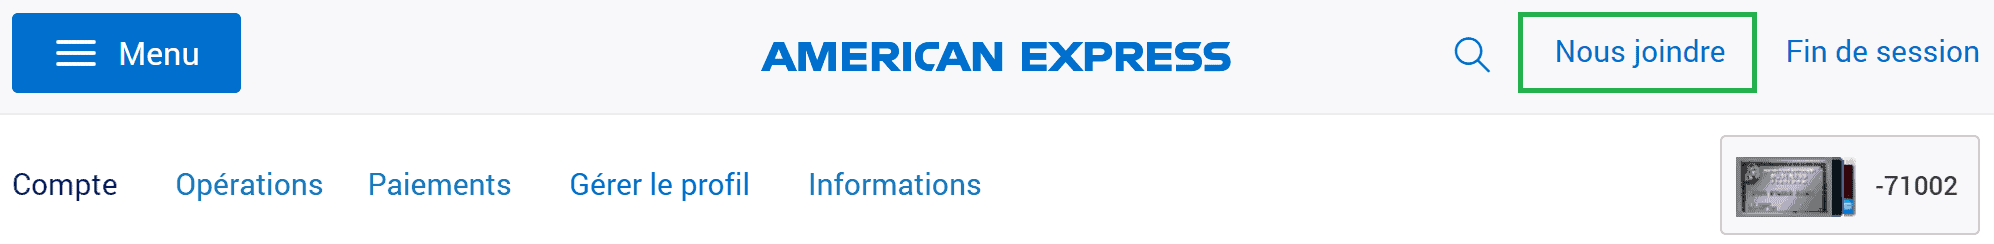 nous joindre amex